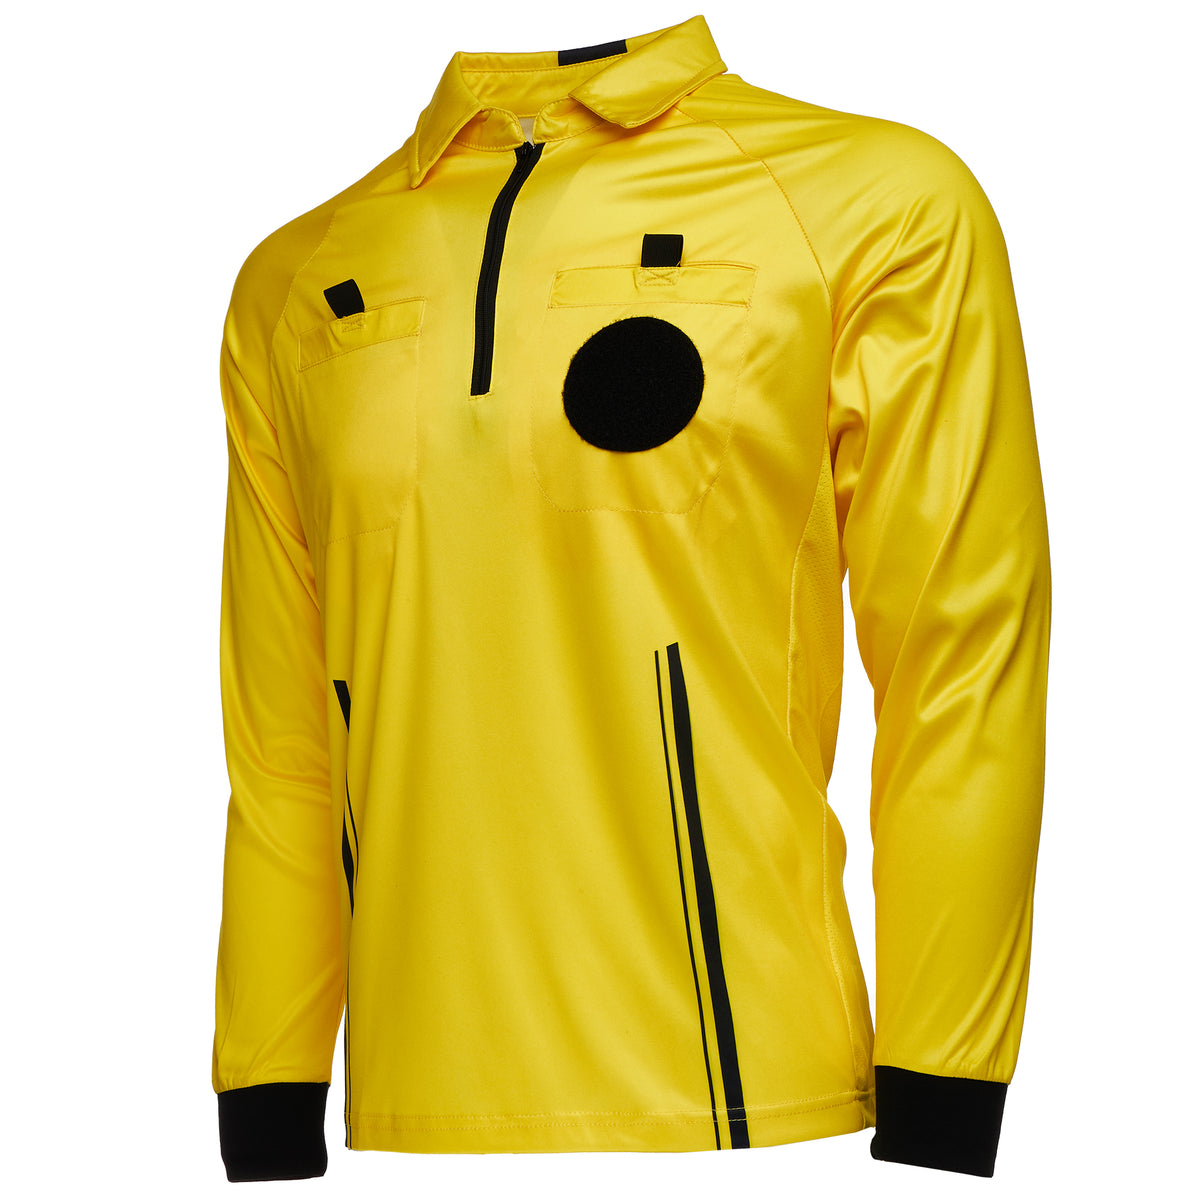 Soccer Football Murray Sporting Goods Mens Official Pro-Style Long Sleeve Collared Referee Shirt Officiating Jersey for Basketball